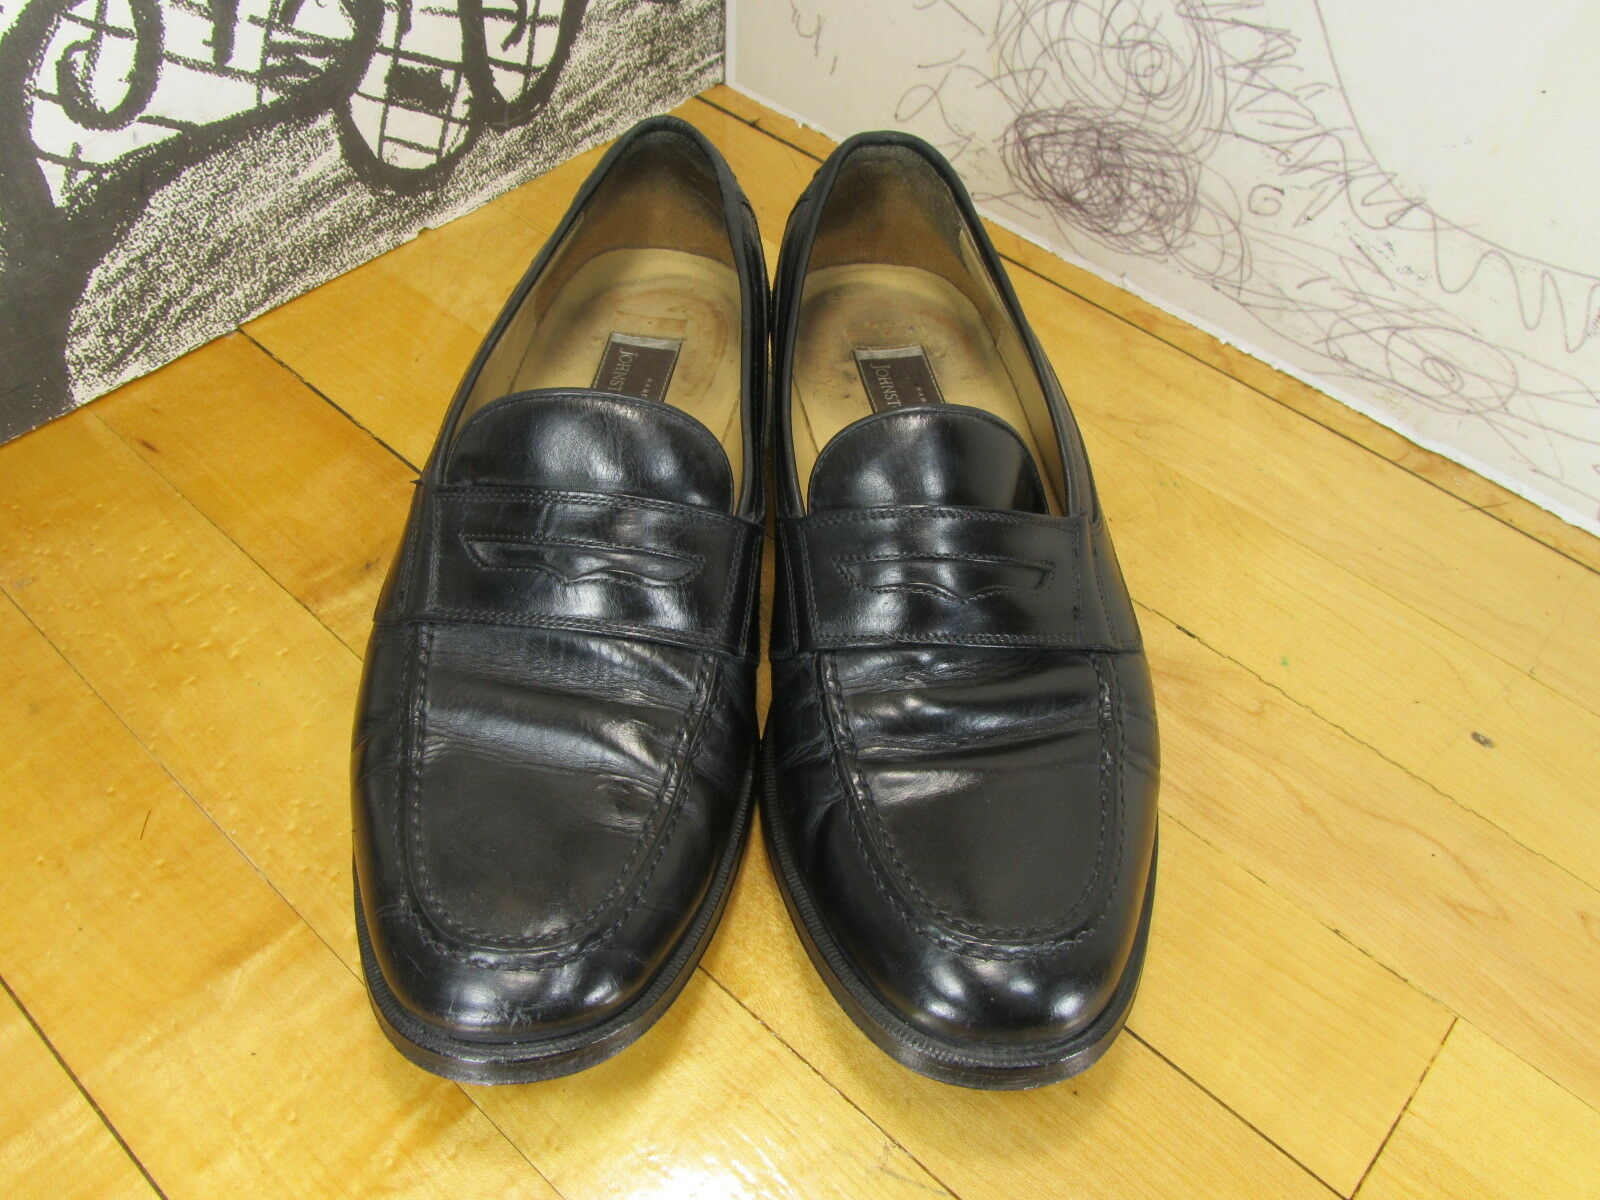 Johnston & Penny Murphy Handcrafted Black Leather Penny & Loafers Men's 9.5D Italy 7083e1